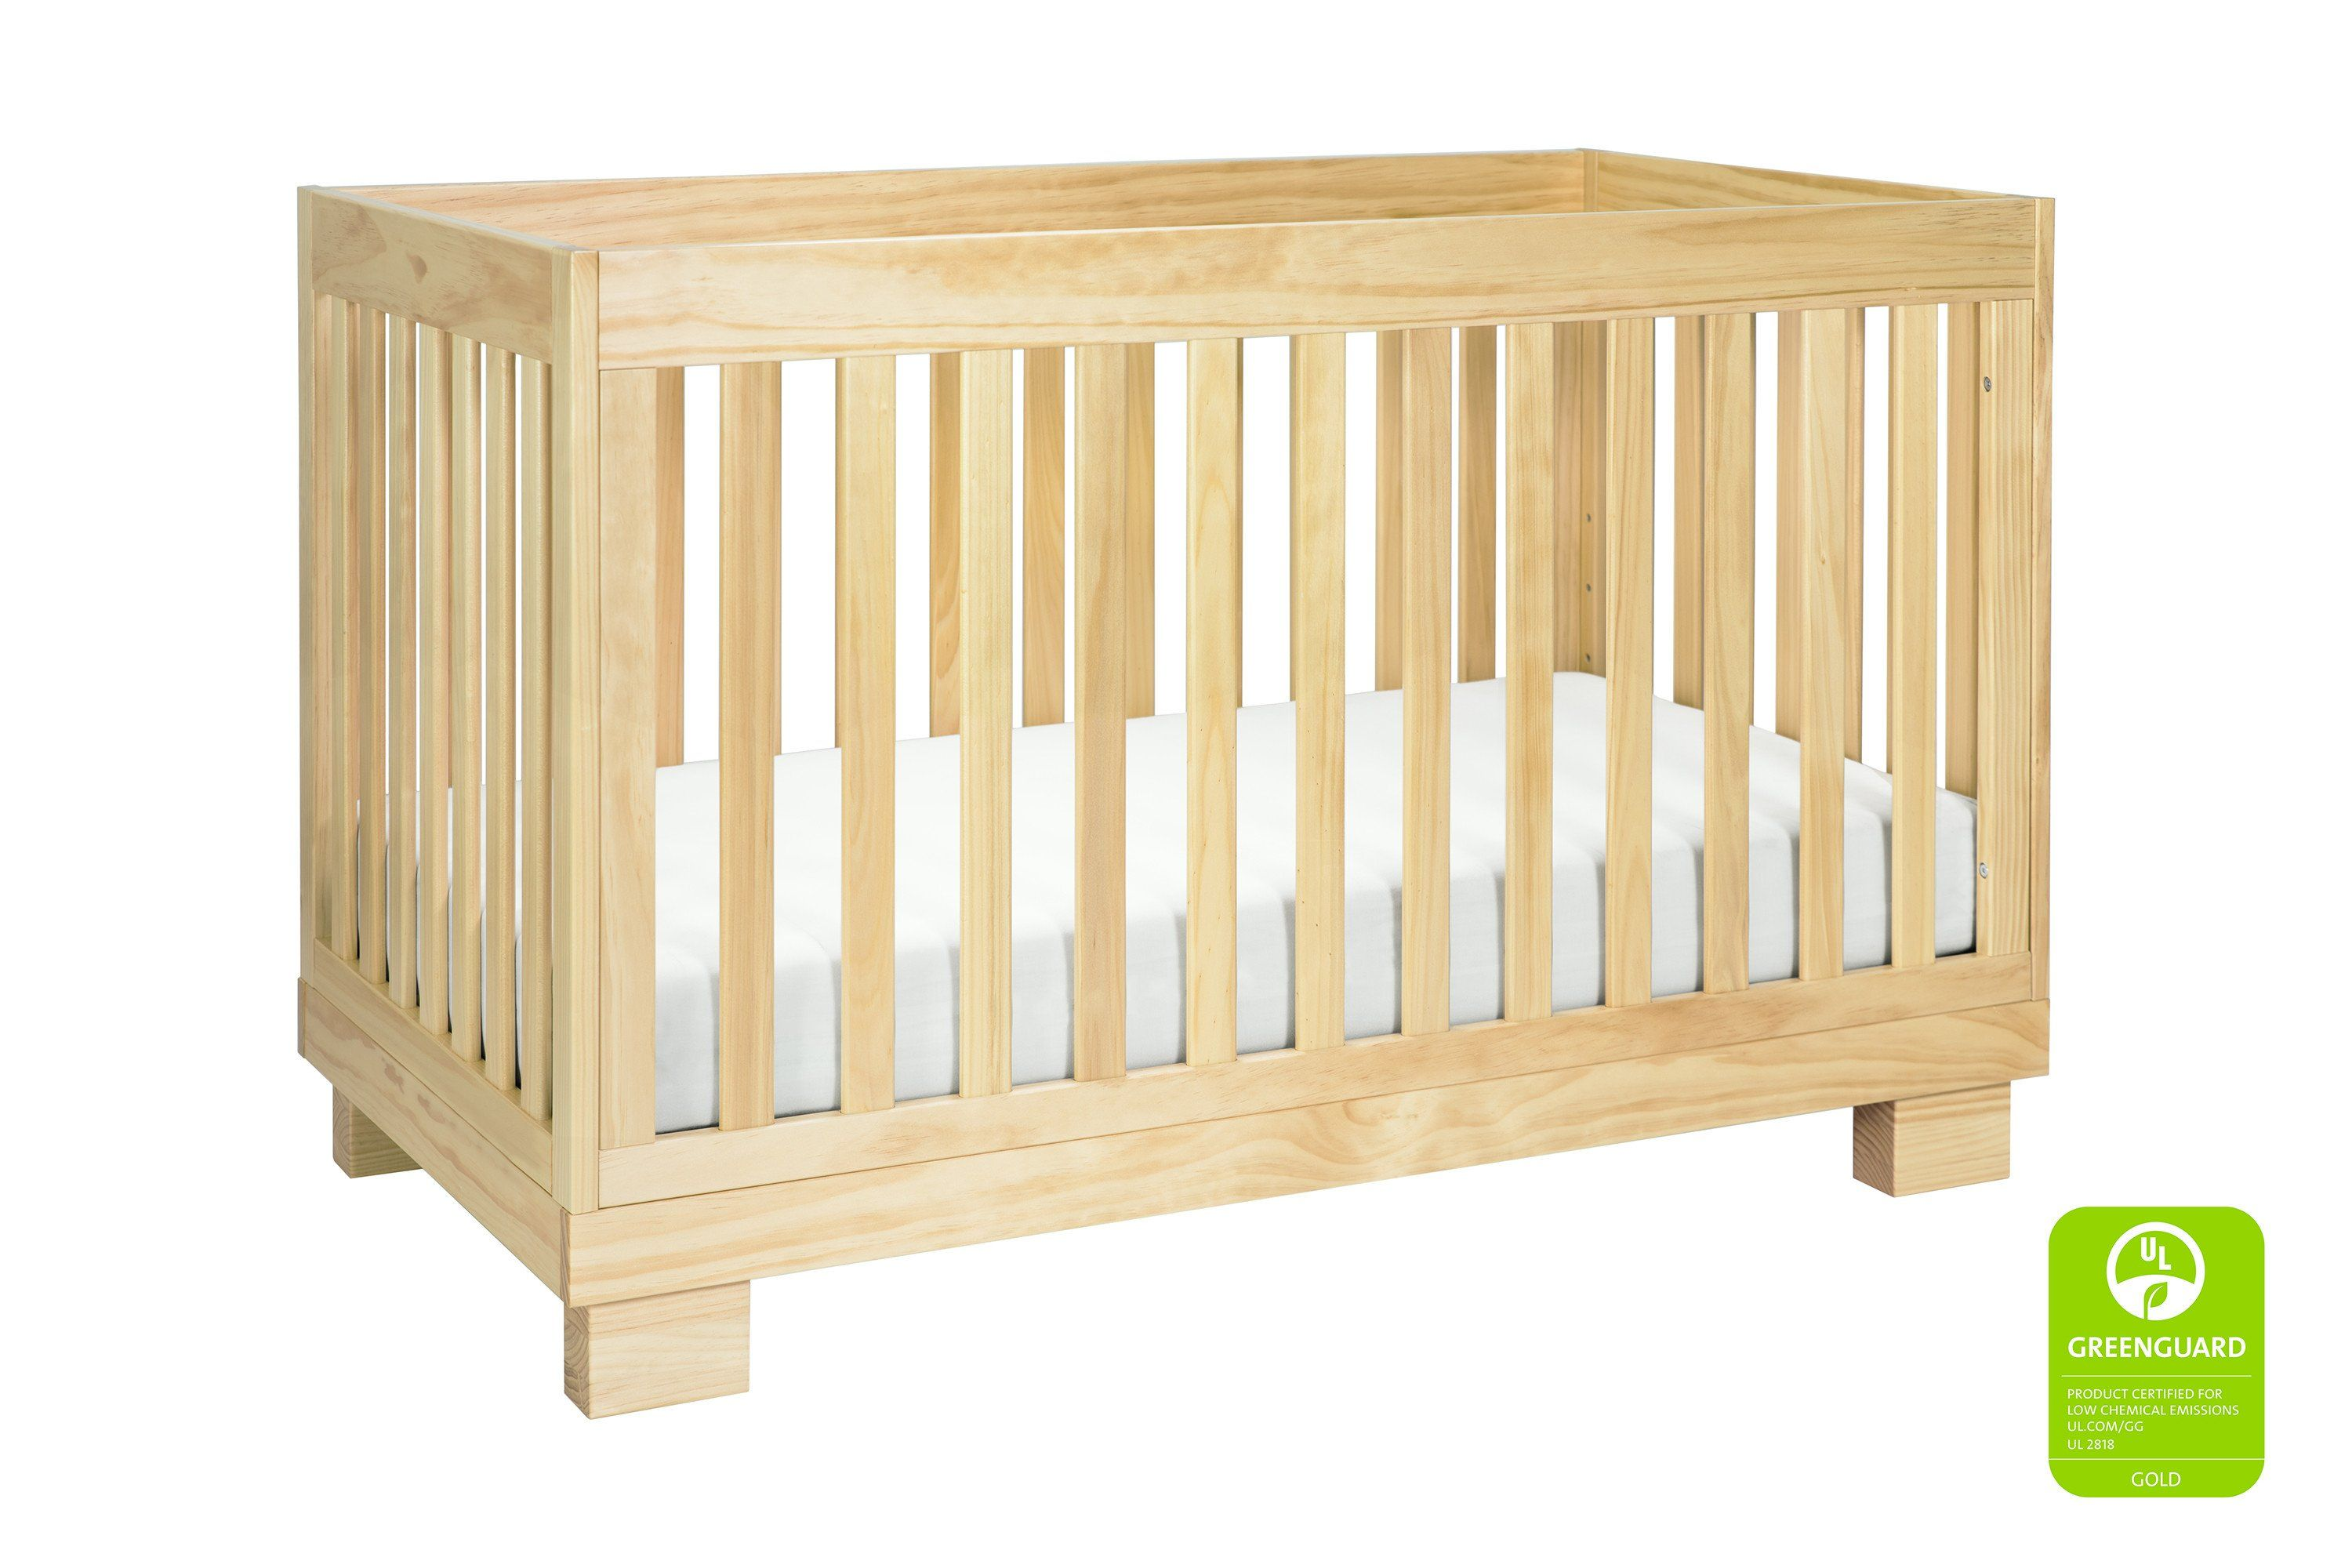 instructions full f maxresdefaulta size toddler a convert turns into bed to convertible crib turning turn beda